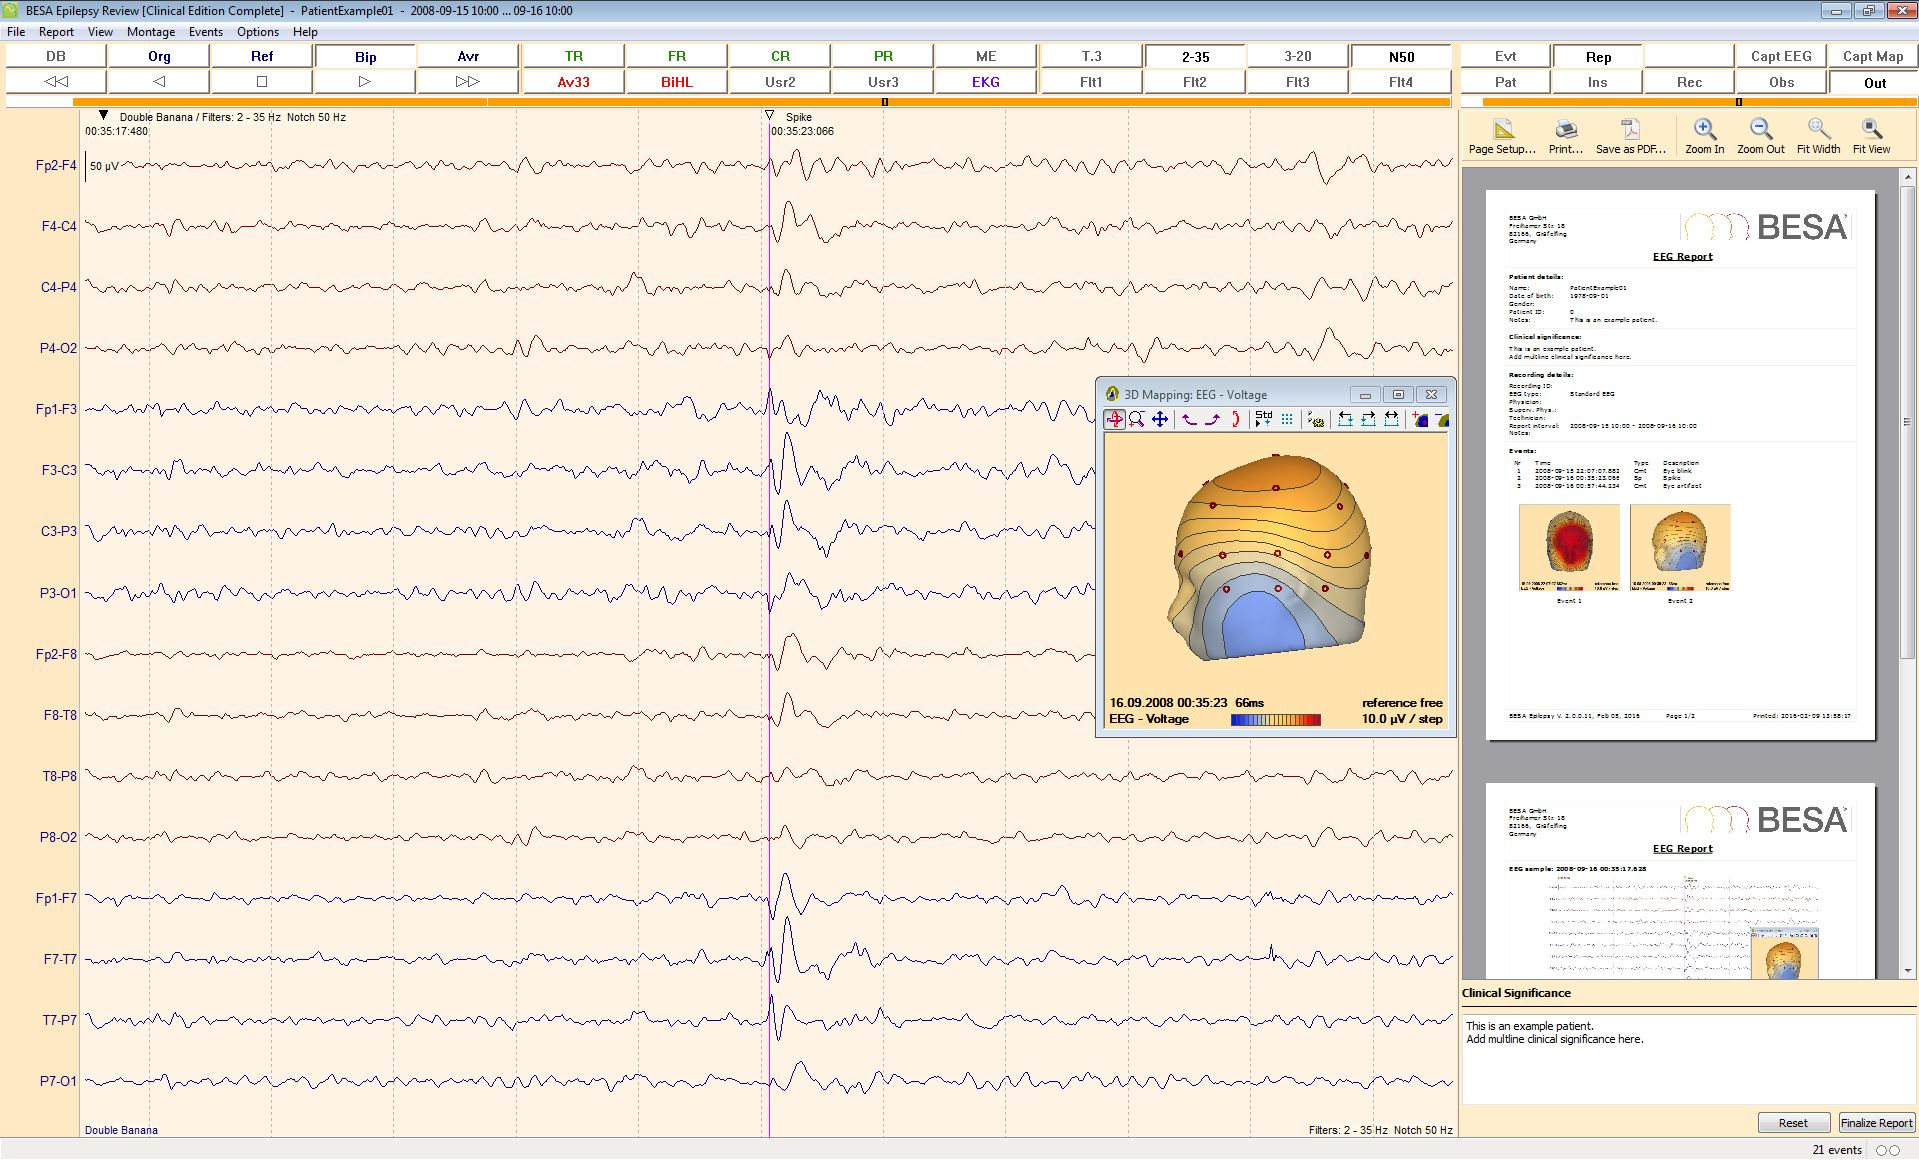 BESA_Epilepsy_2_0_EEG_Review_Report